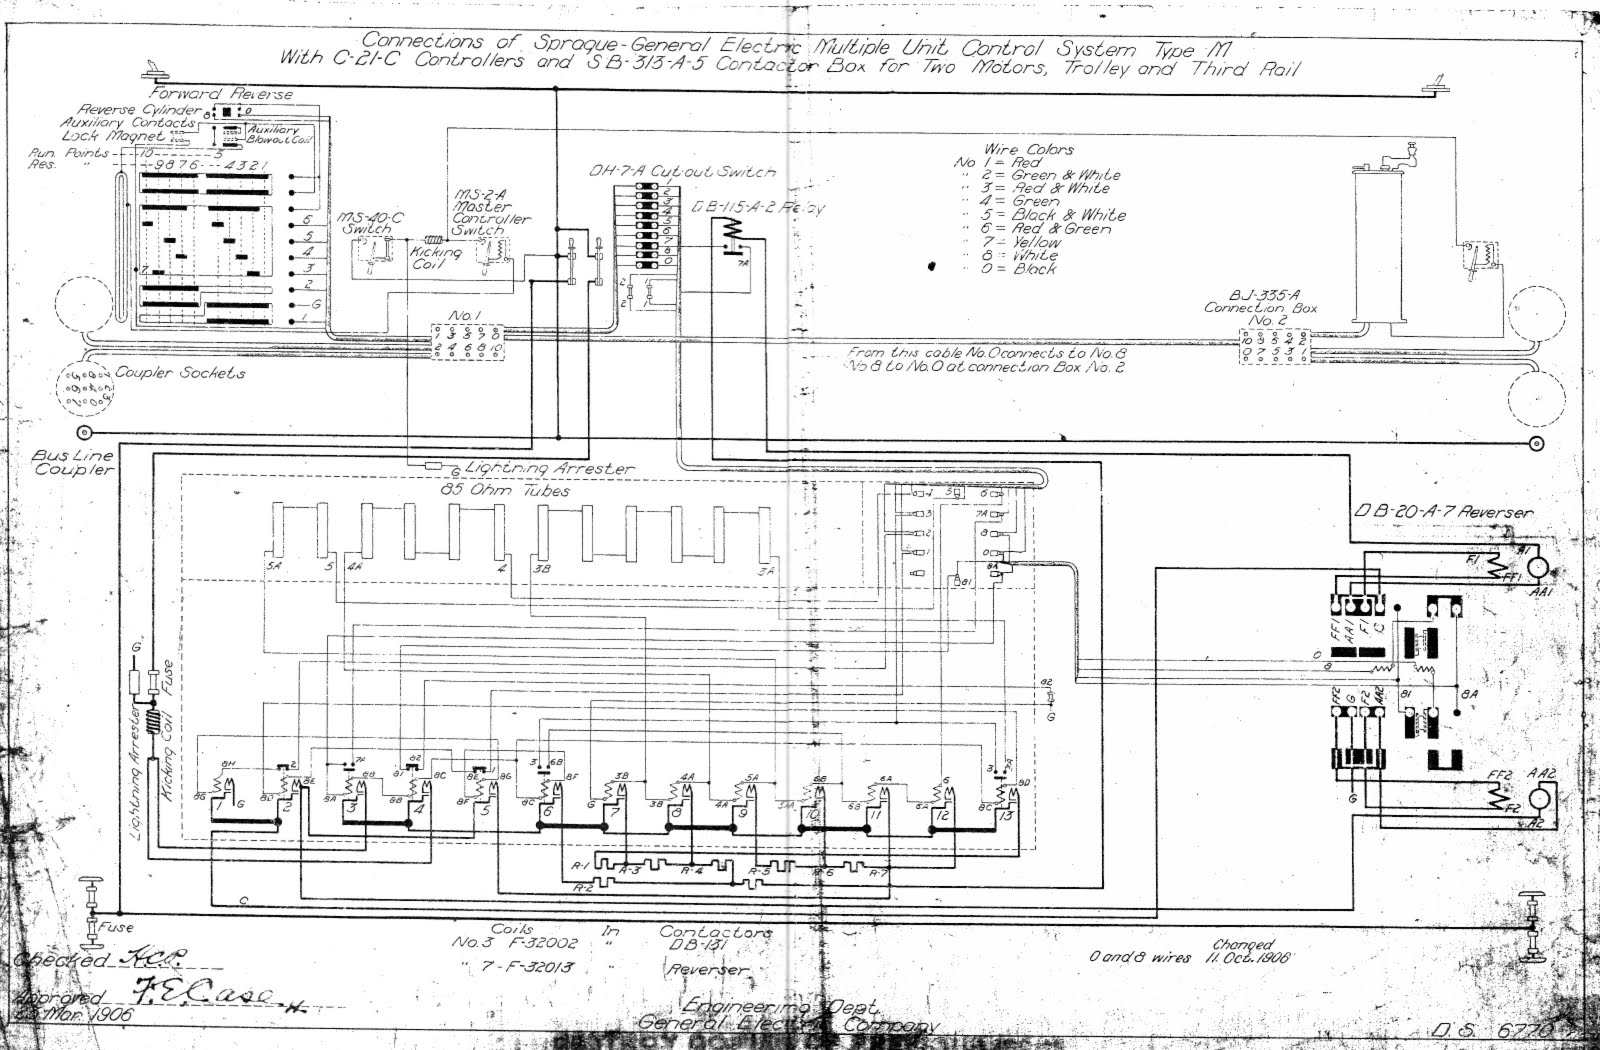 Control Circuit Diagrams likewise Auxillary Heater Yet Again further 7he2k Wiring Diagram Fasco Motor Model 50747 D230 likewise Economy 7 Meter Wiring Diagram as well EP0919154A2. on heater circuit diagram